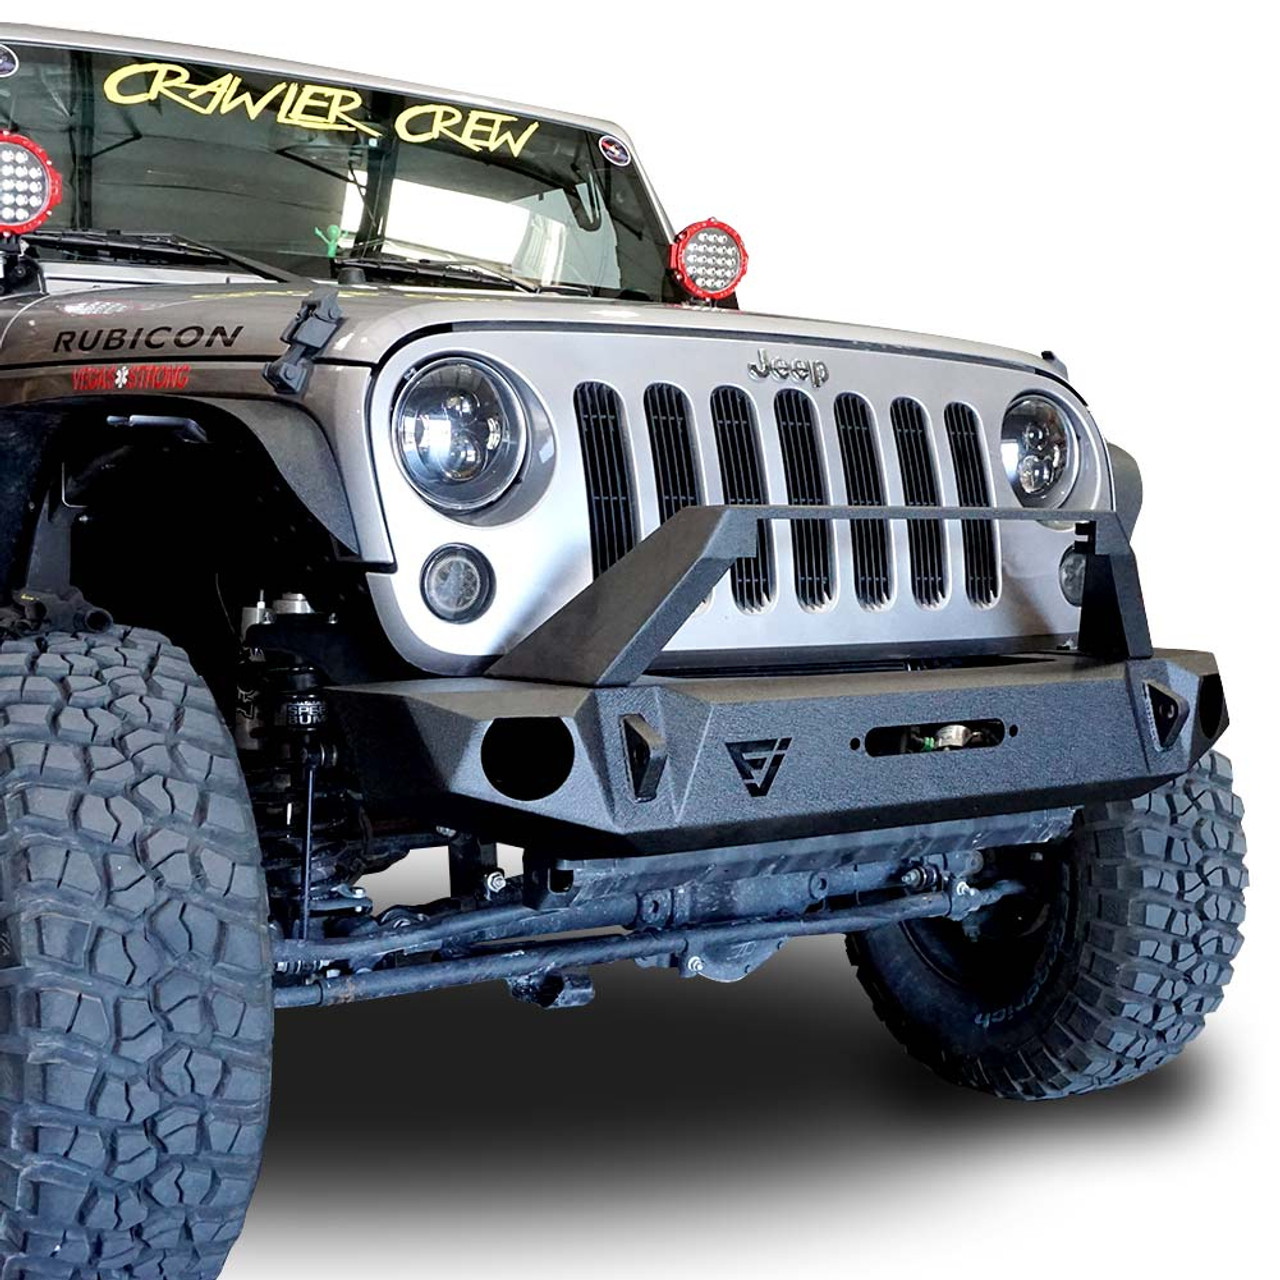 Front high rise bull bar bumper wlight bar holder woem fog holes for wrangler 2007 2018 front high rise bull bar bumper wlight bar holder woem fog holes aloadofball Image collections